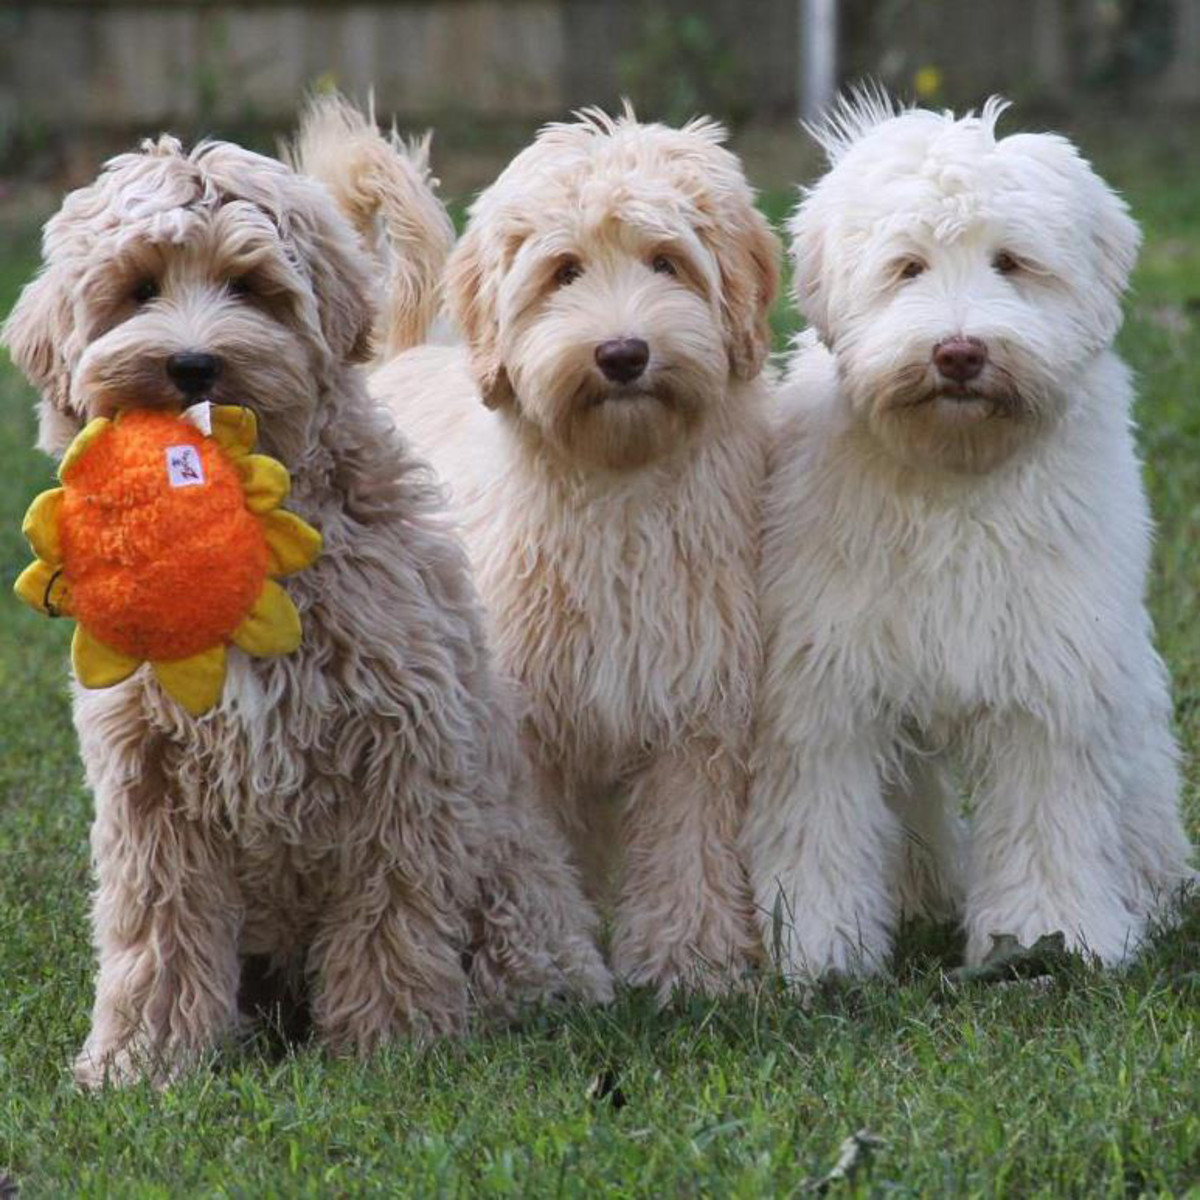 Three full-grown Australian Labradoodles